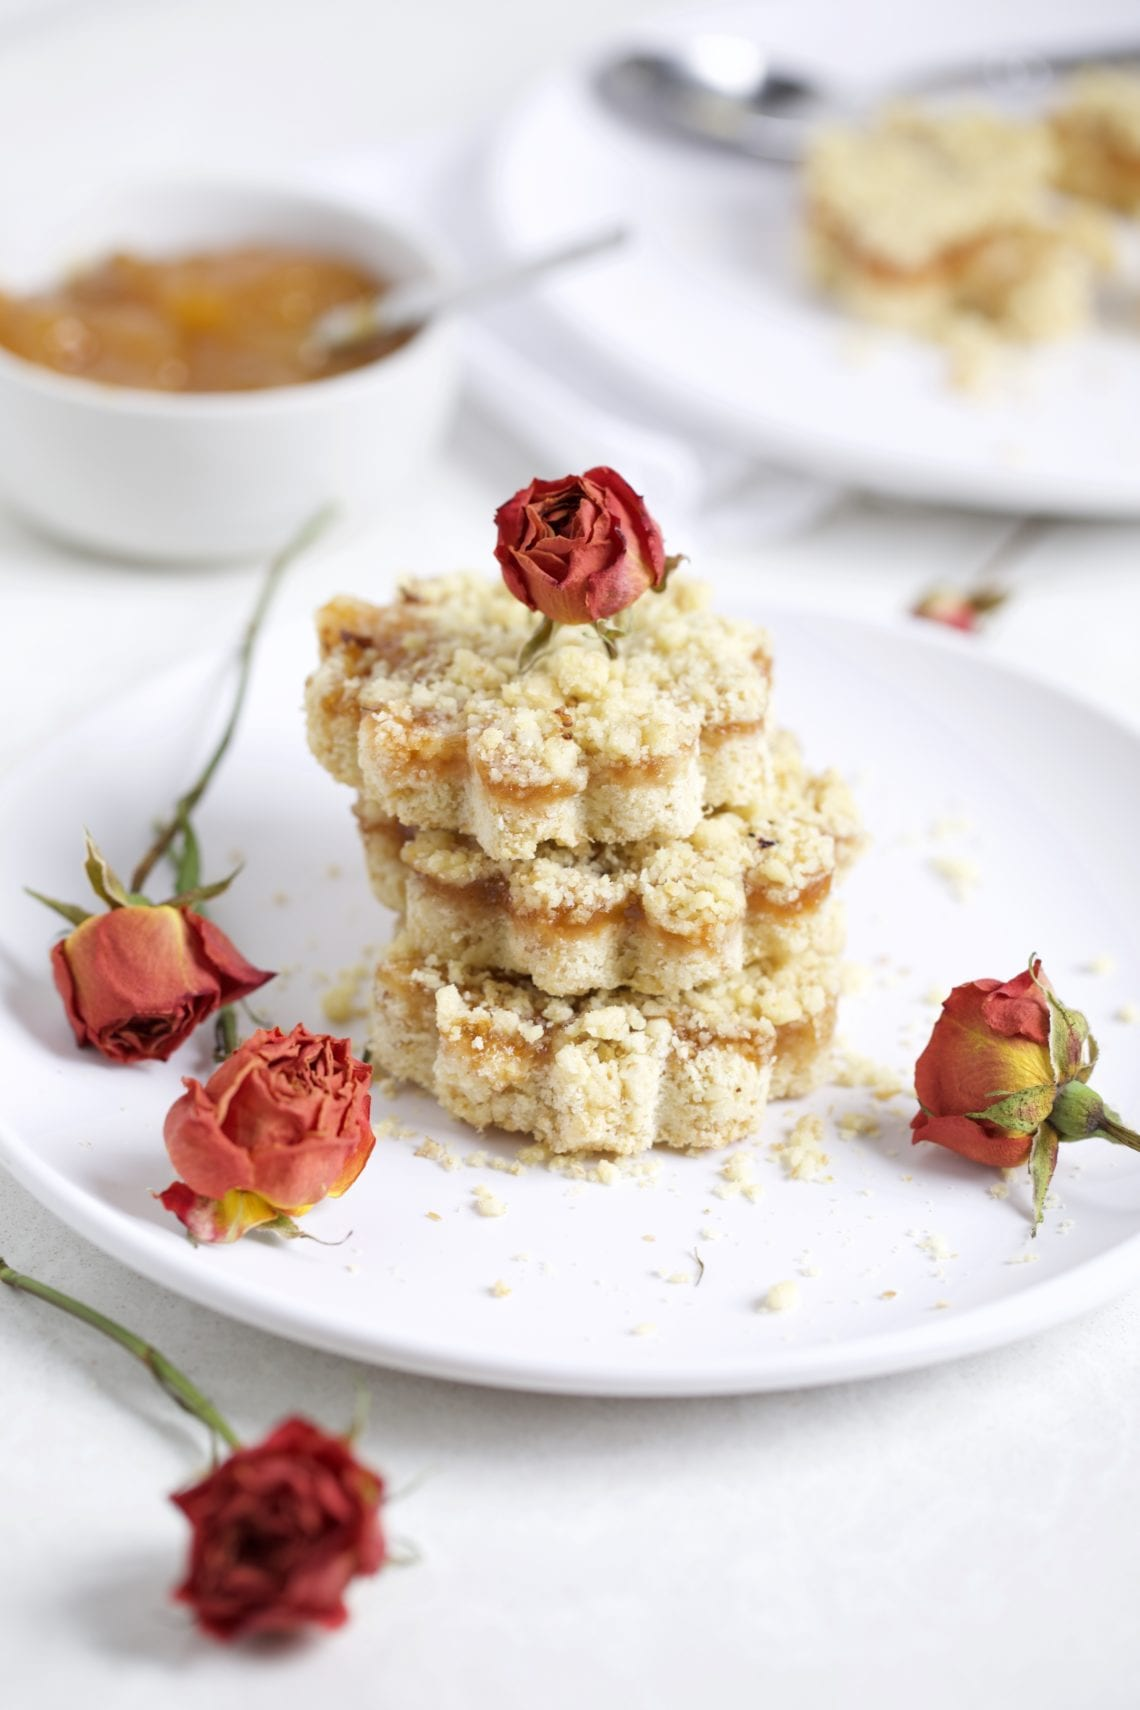 Italian Crumb cake with jam on a plate with dried roses